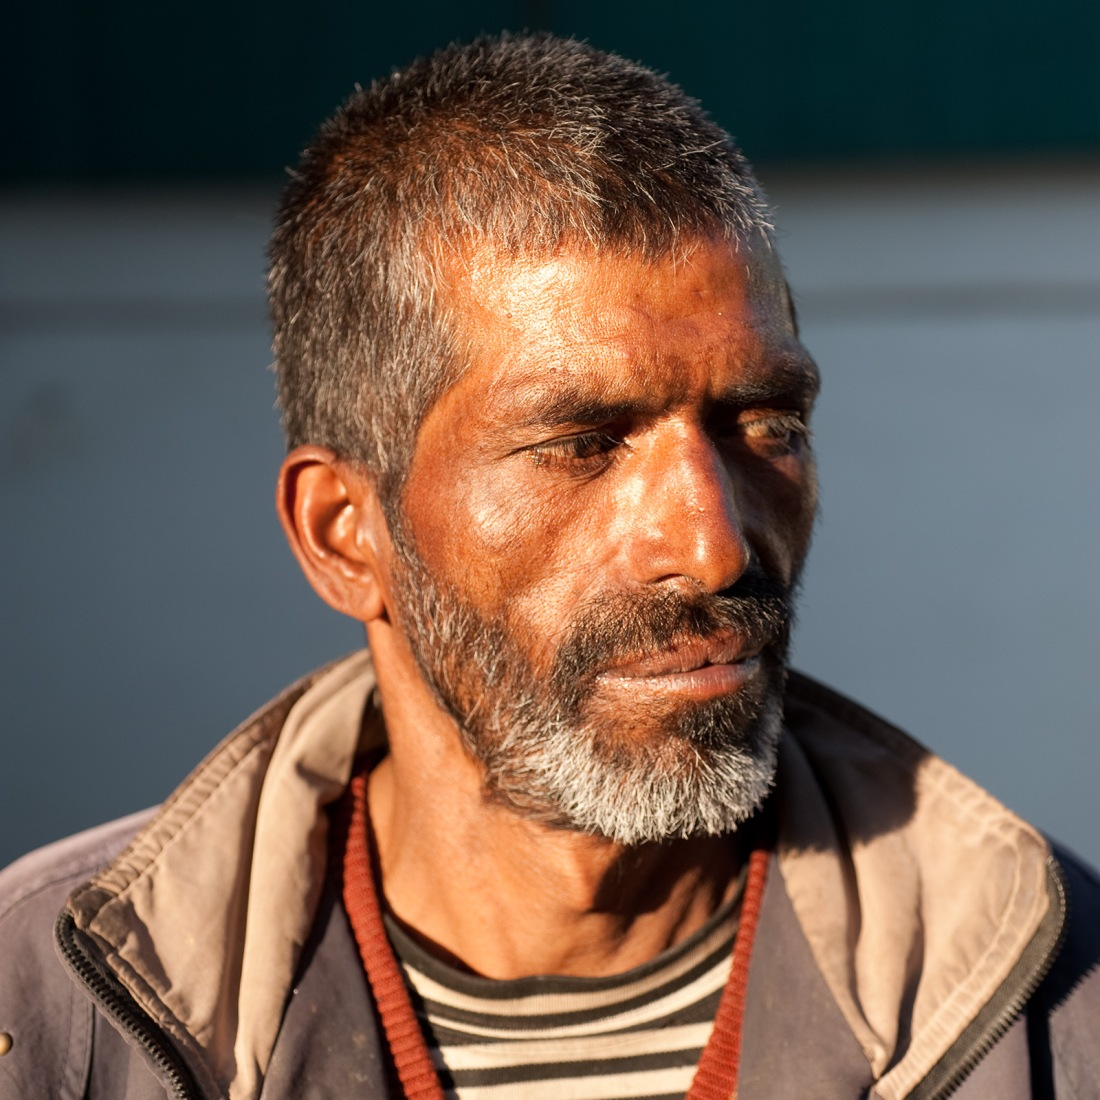 Naryan, one of our porters, at Ghuttu on our last day.